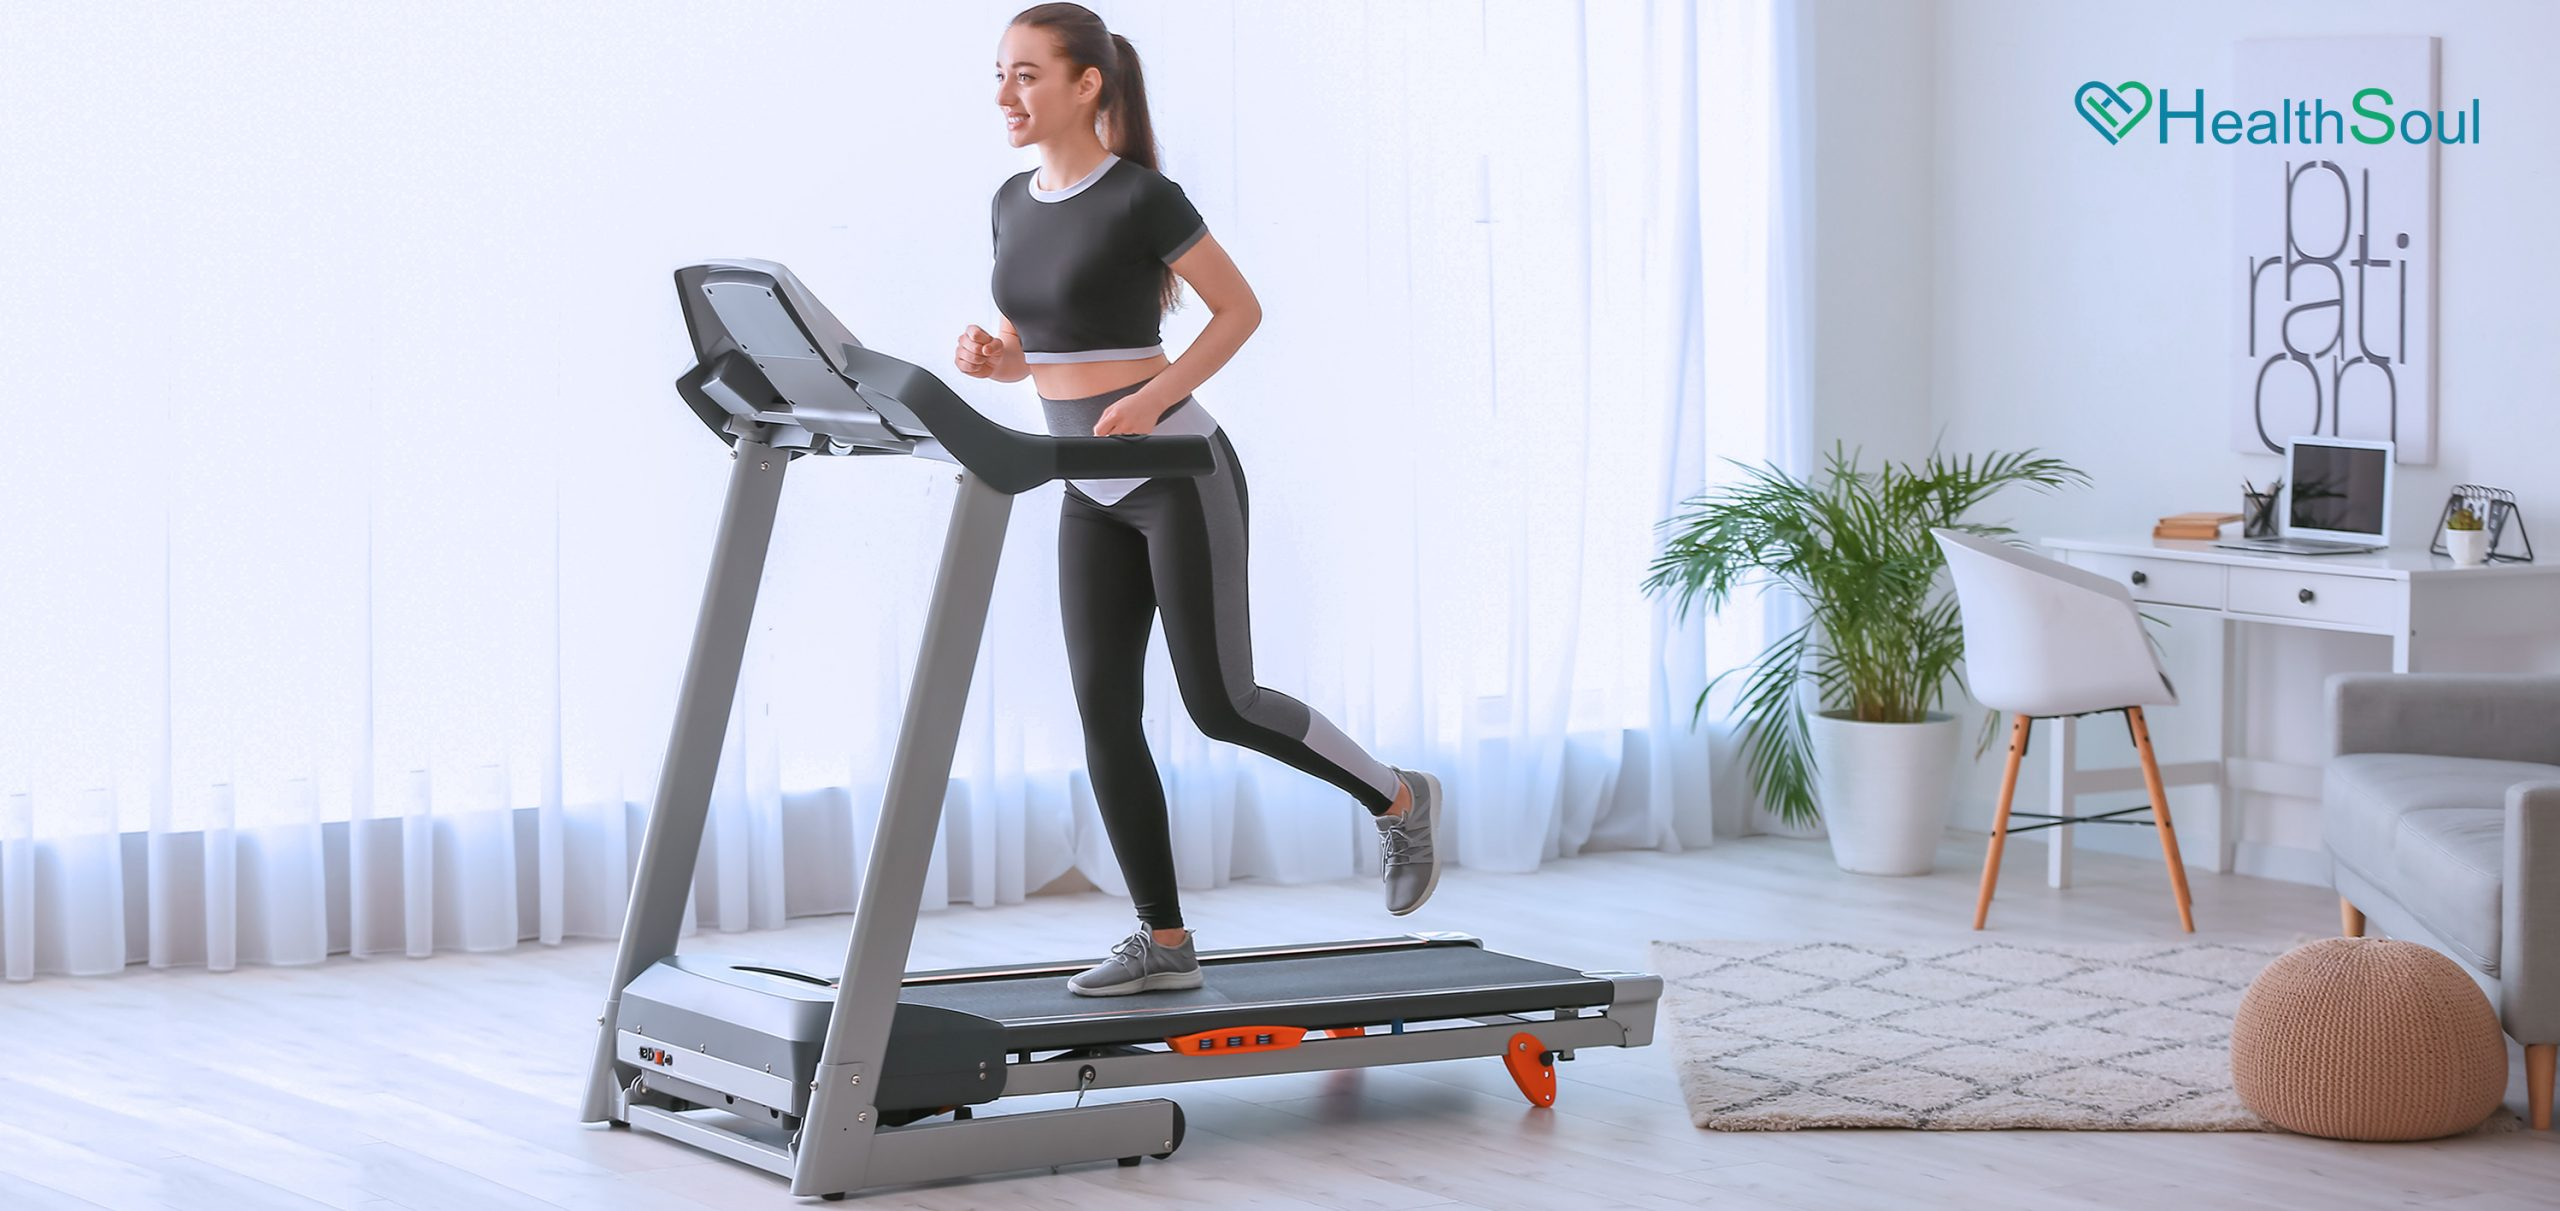 Must have Home Gym Equipment | HealthSoul